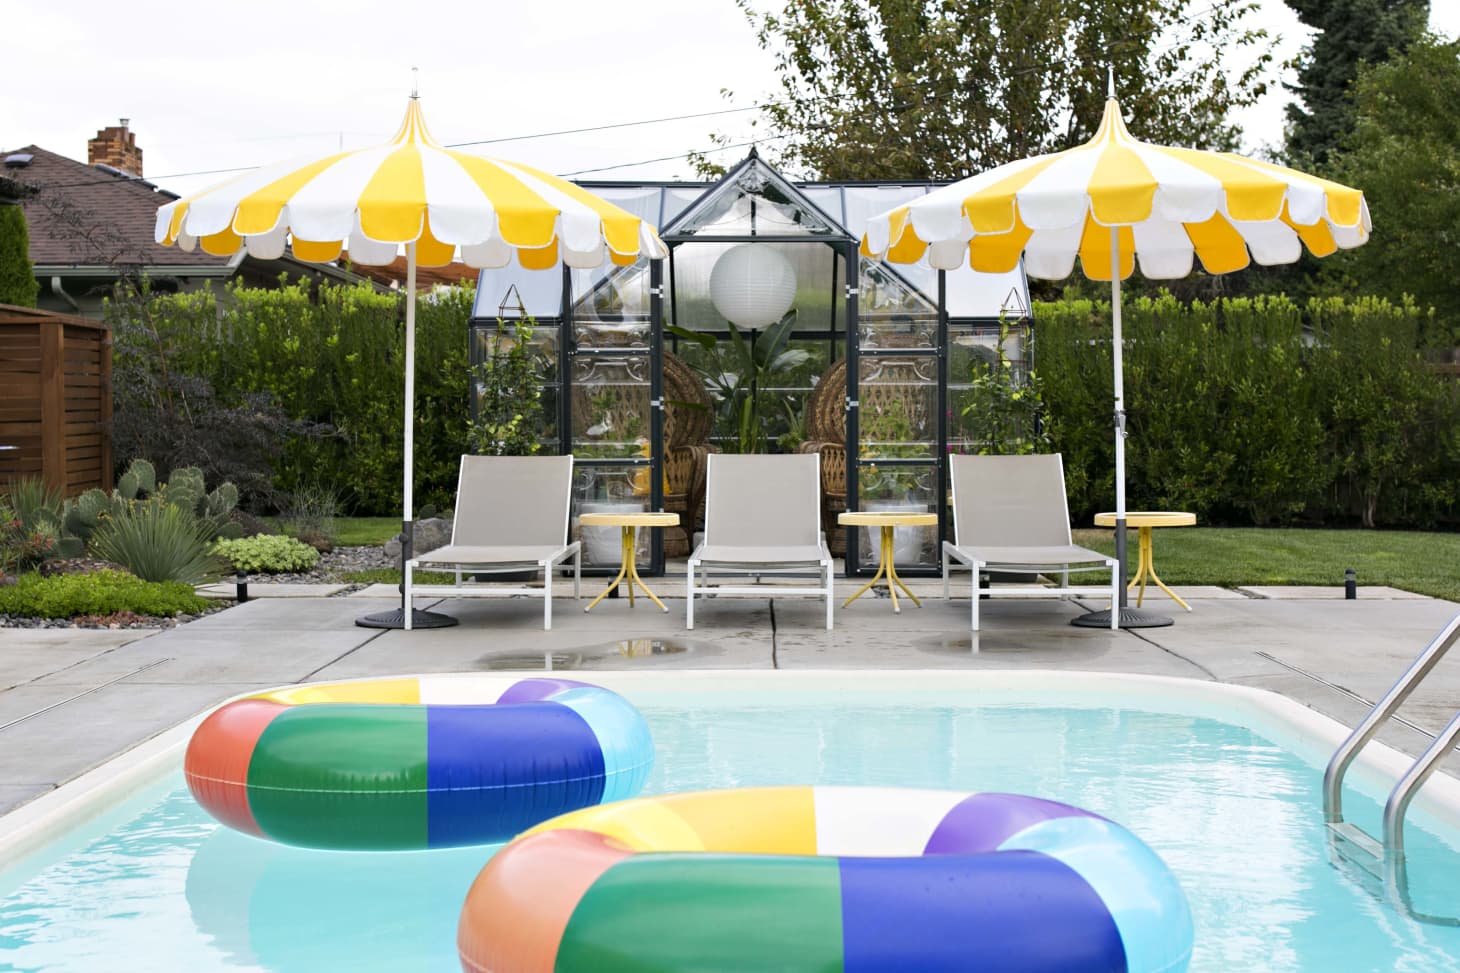 10 Small Backyard Pool Ideas How To Fit A Pool In A Small Yard